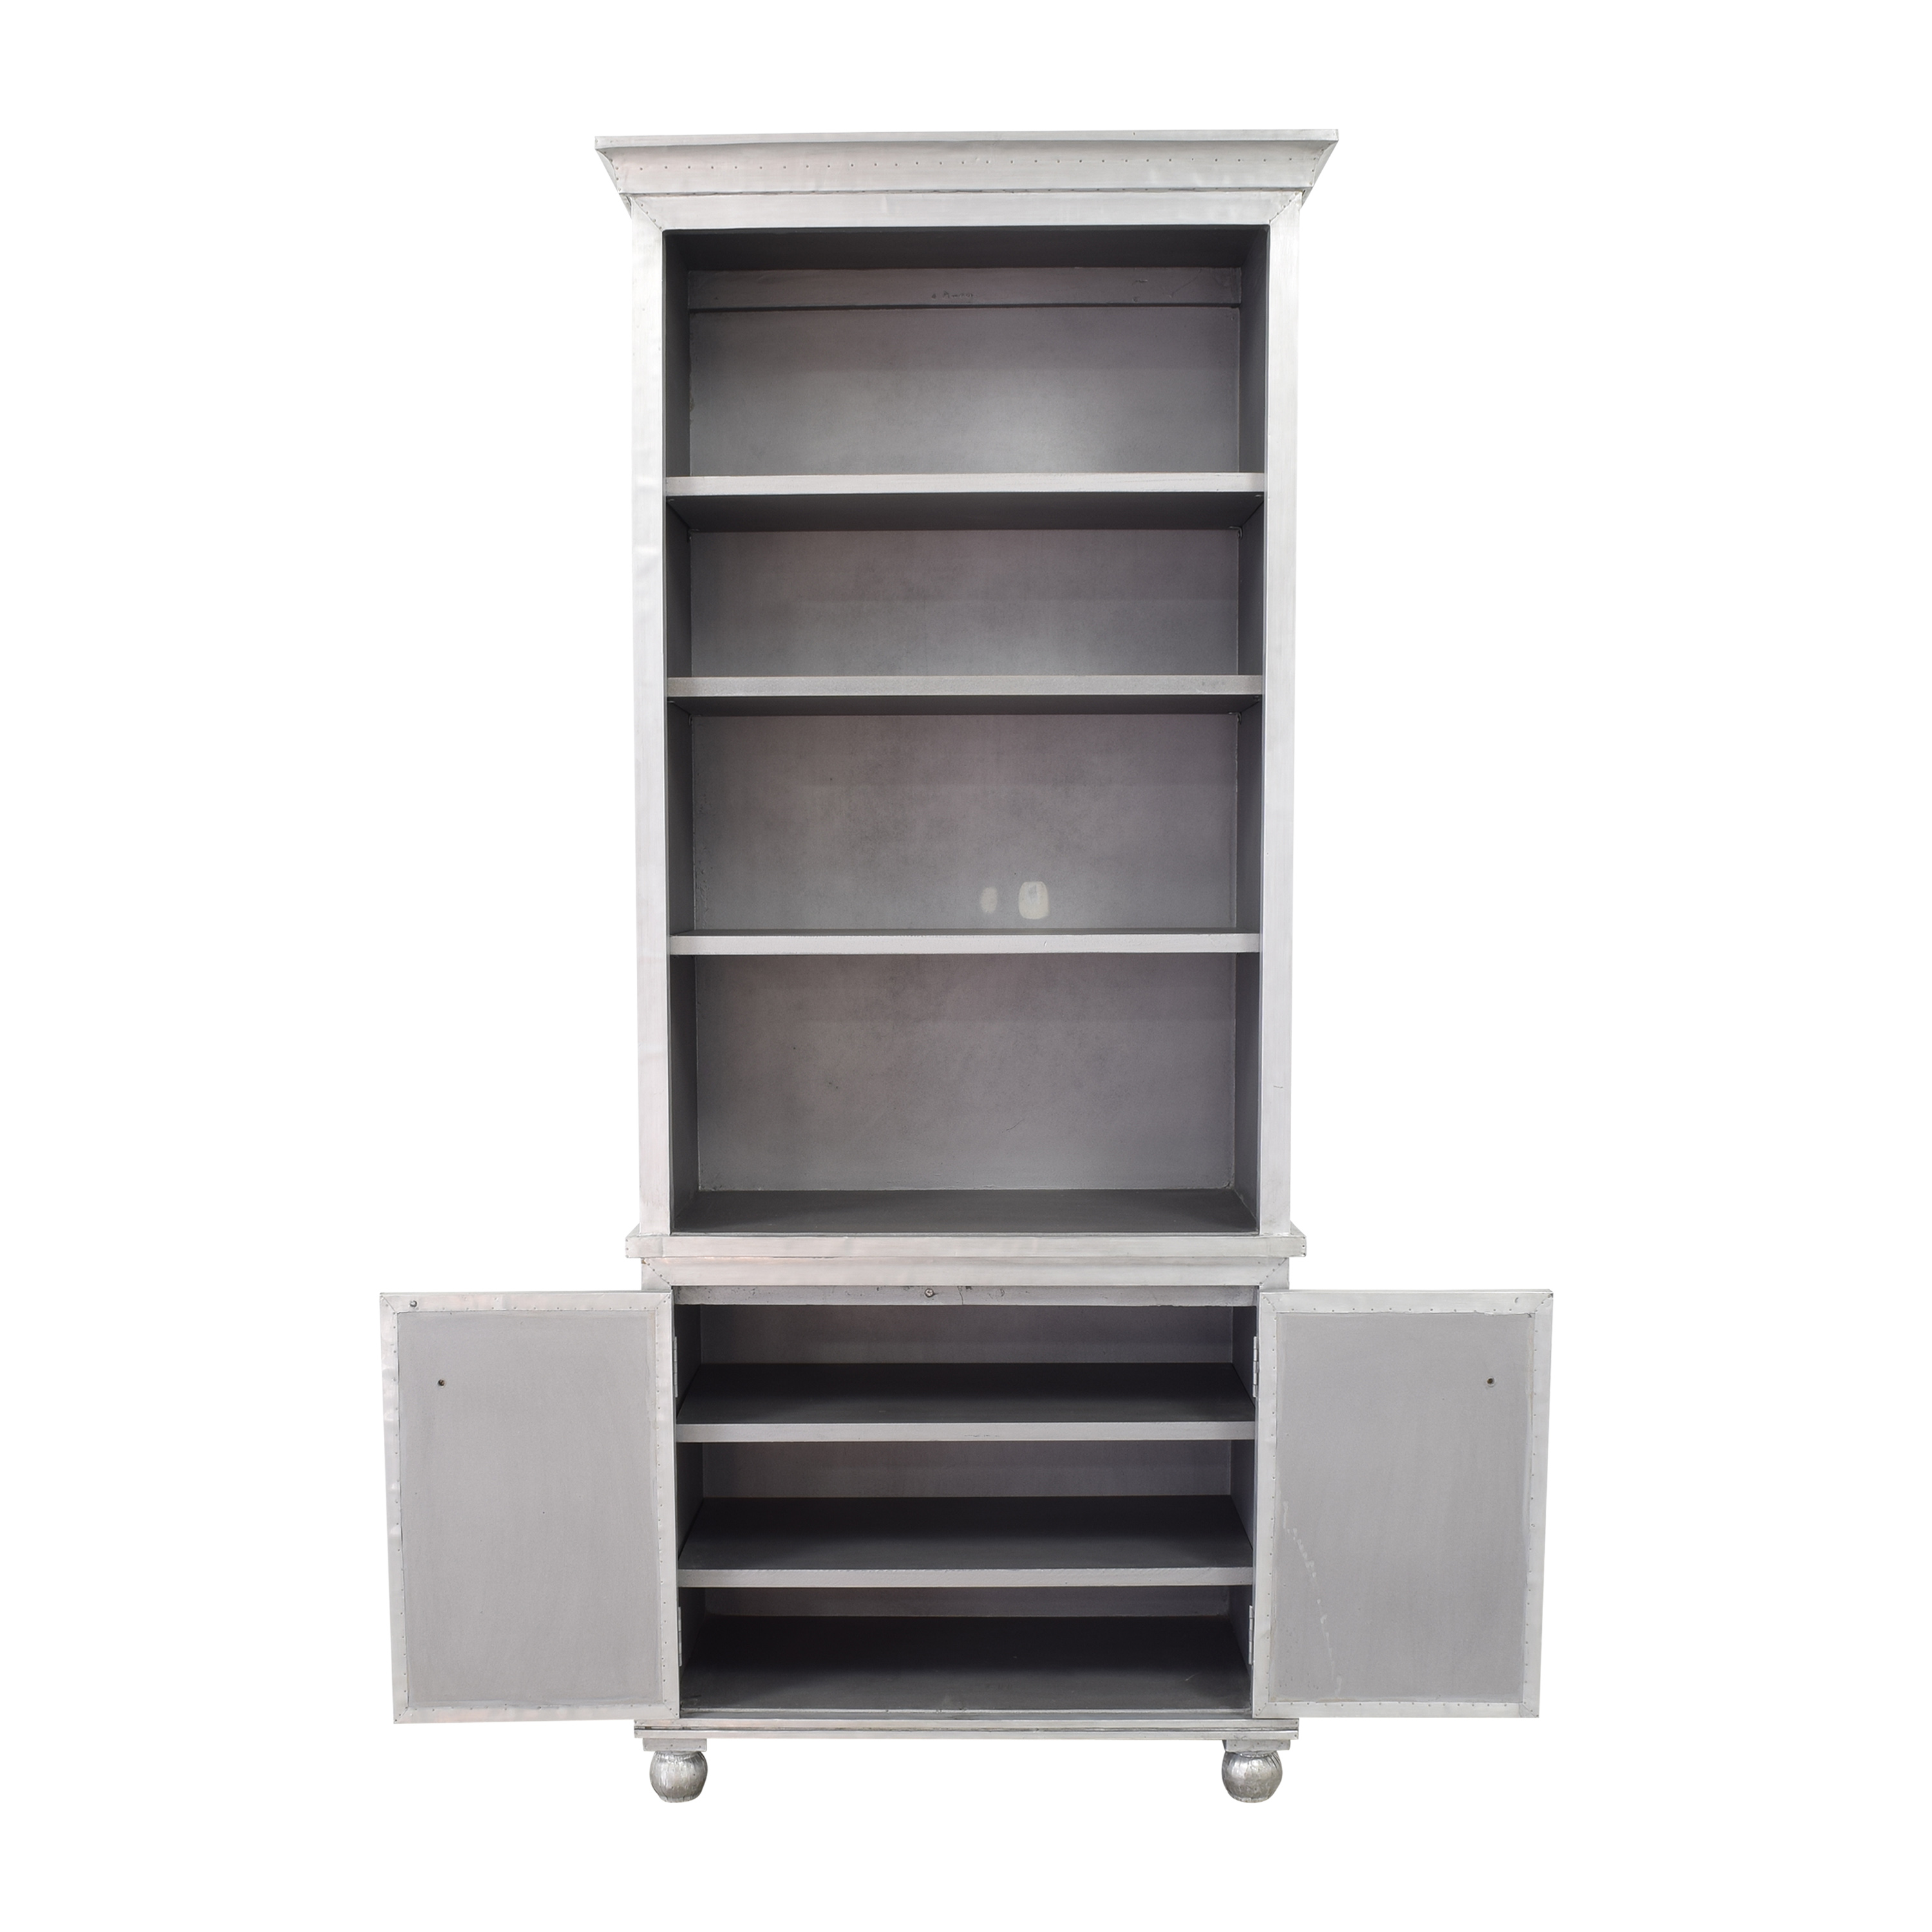 Restoration Hardware Restoration Hardware Annecy Double Door Sideboard and Open Hutch used